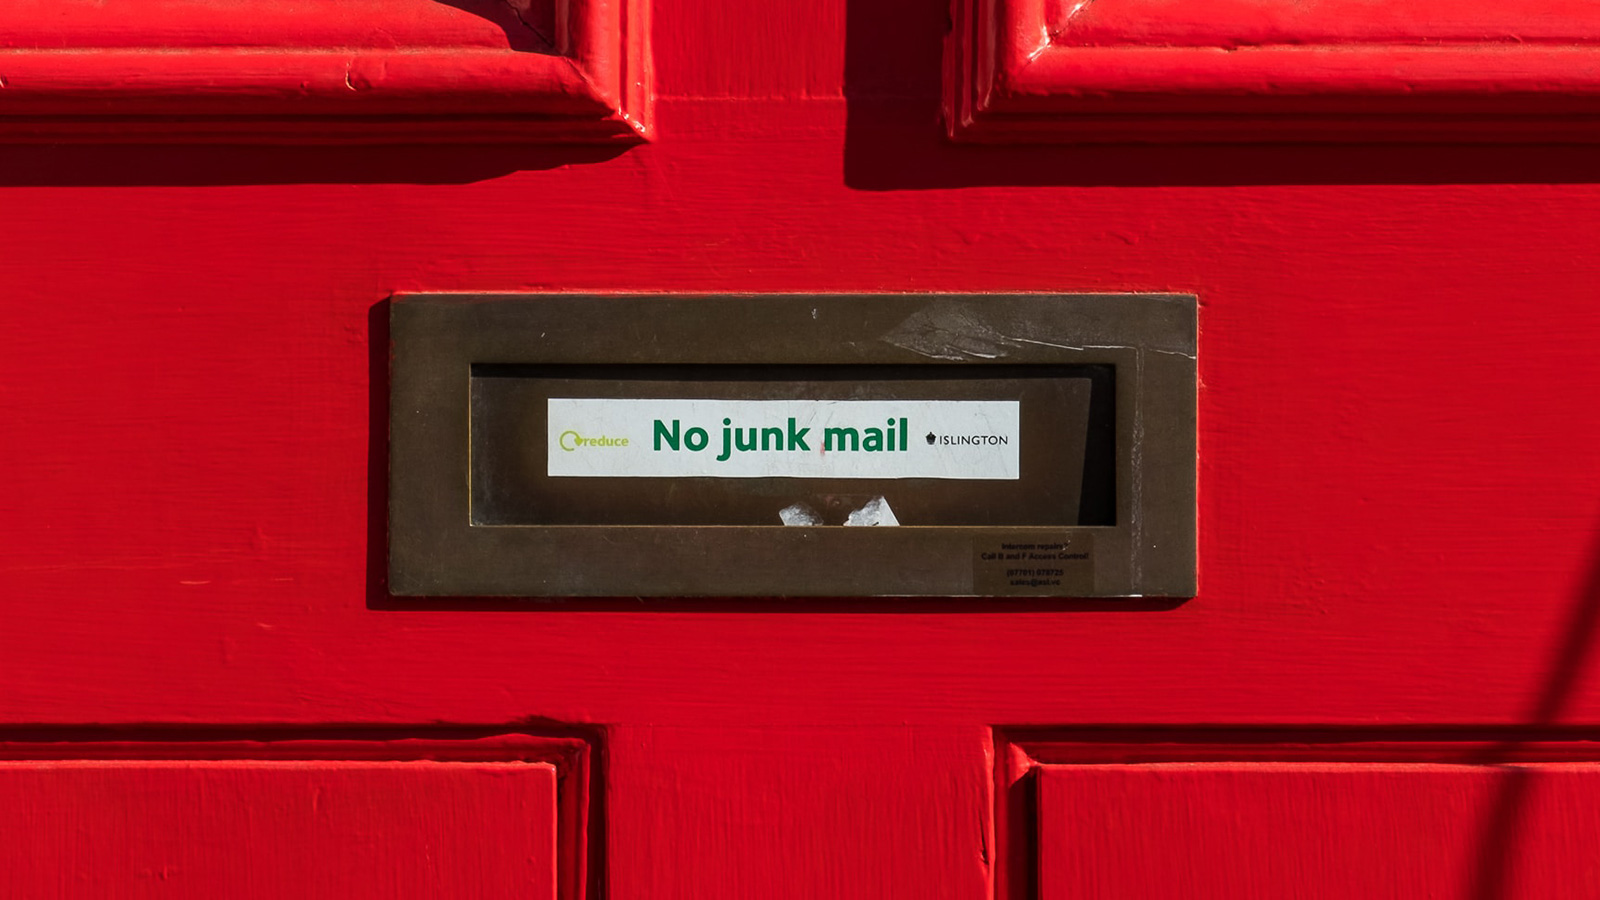 Cut down on spoofed emails with DKIM